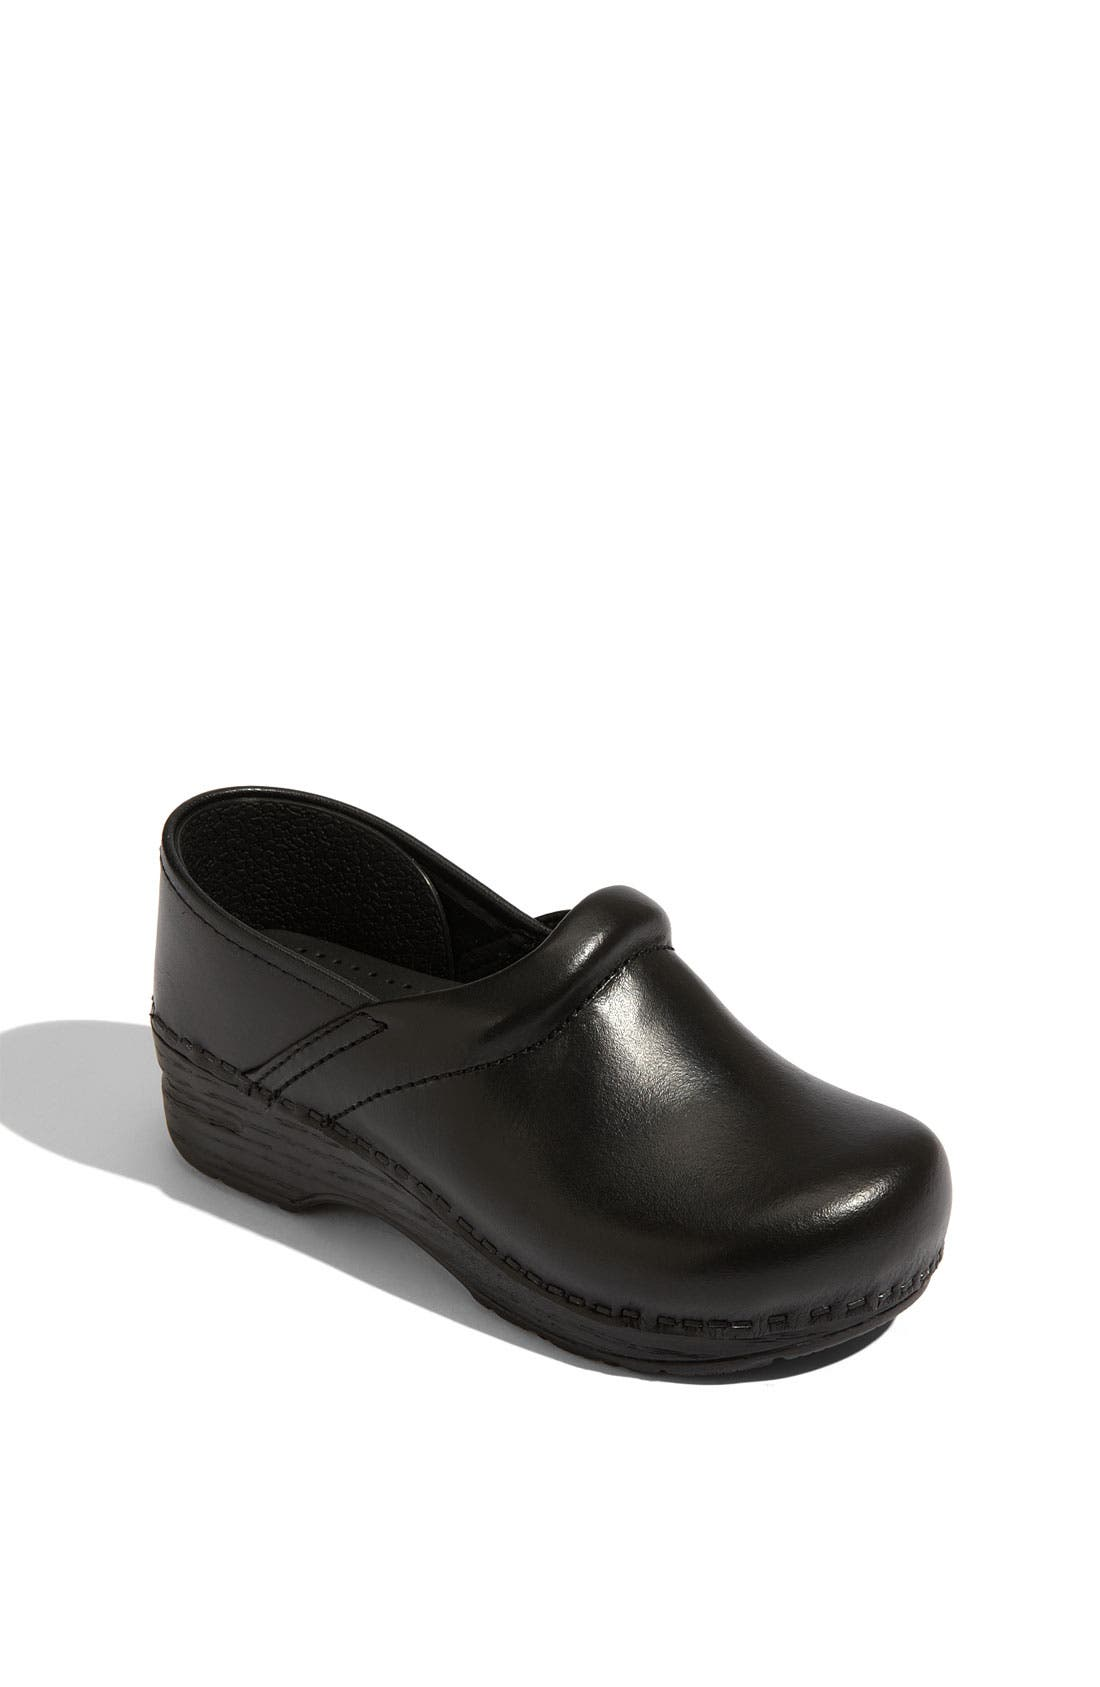 Alternate Image 1 Selected - Dansko 'Gitte' Clog (Toddler & Little Kid)